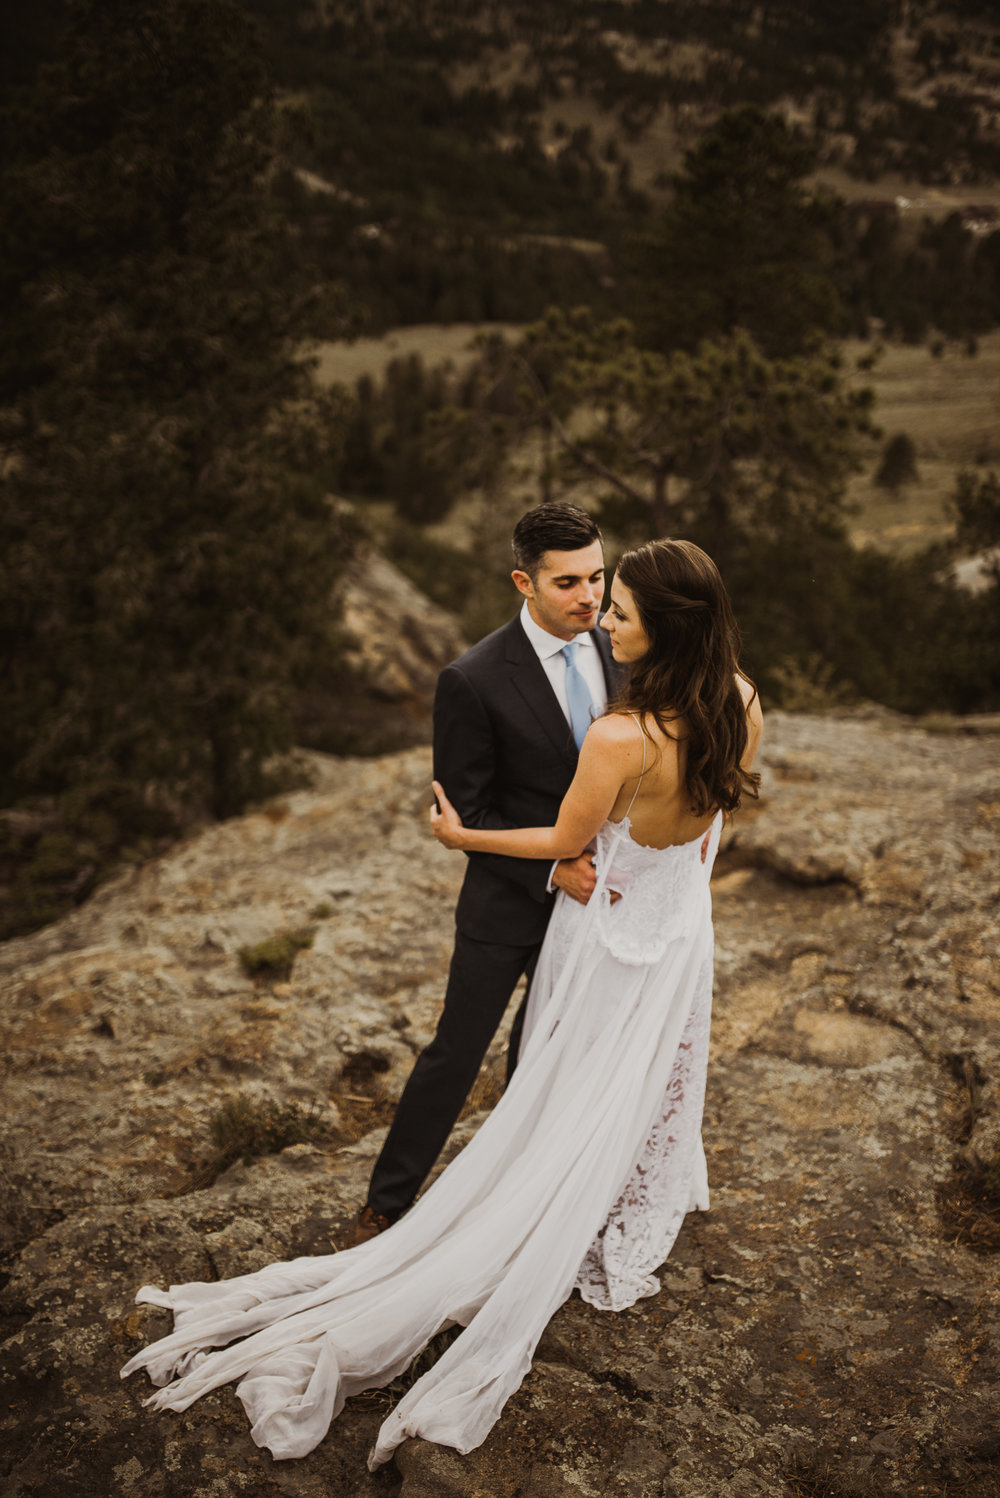 ©Isaiah + Taylor Photography - Estes National Park Adventure Elopement, Colorado Rockies-130.jpg